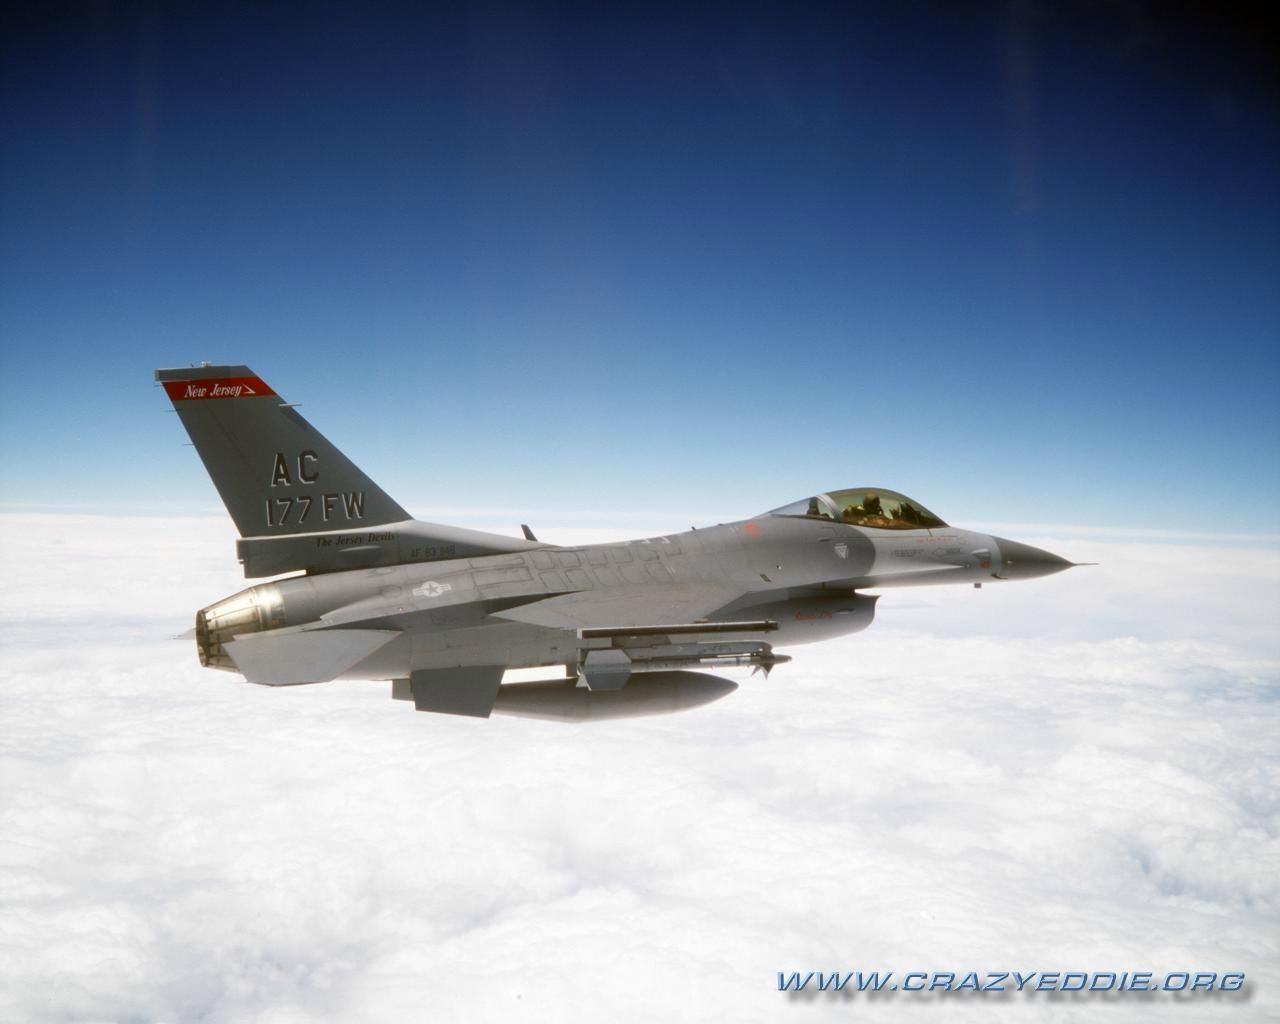 Aircraft Image Back To Usa Military Aircraft Fighter Jets Aircraft Fighter